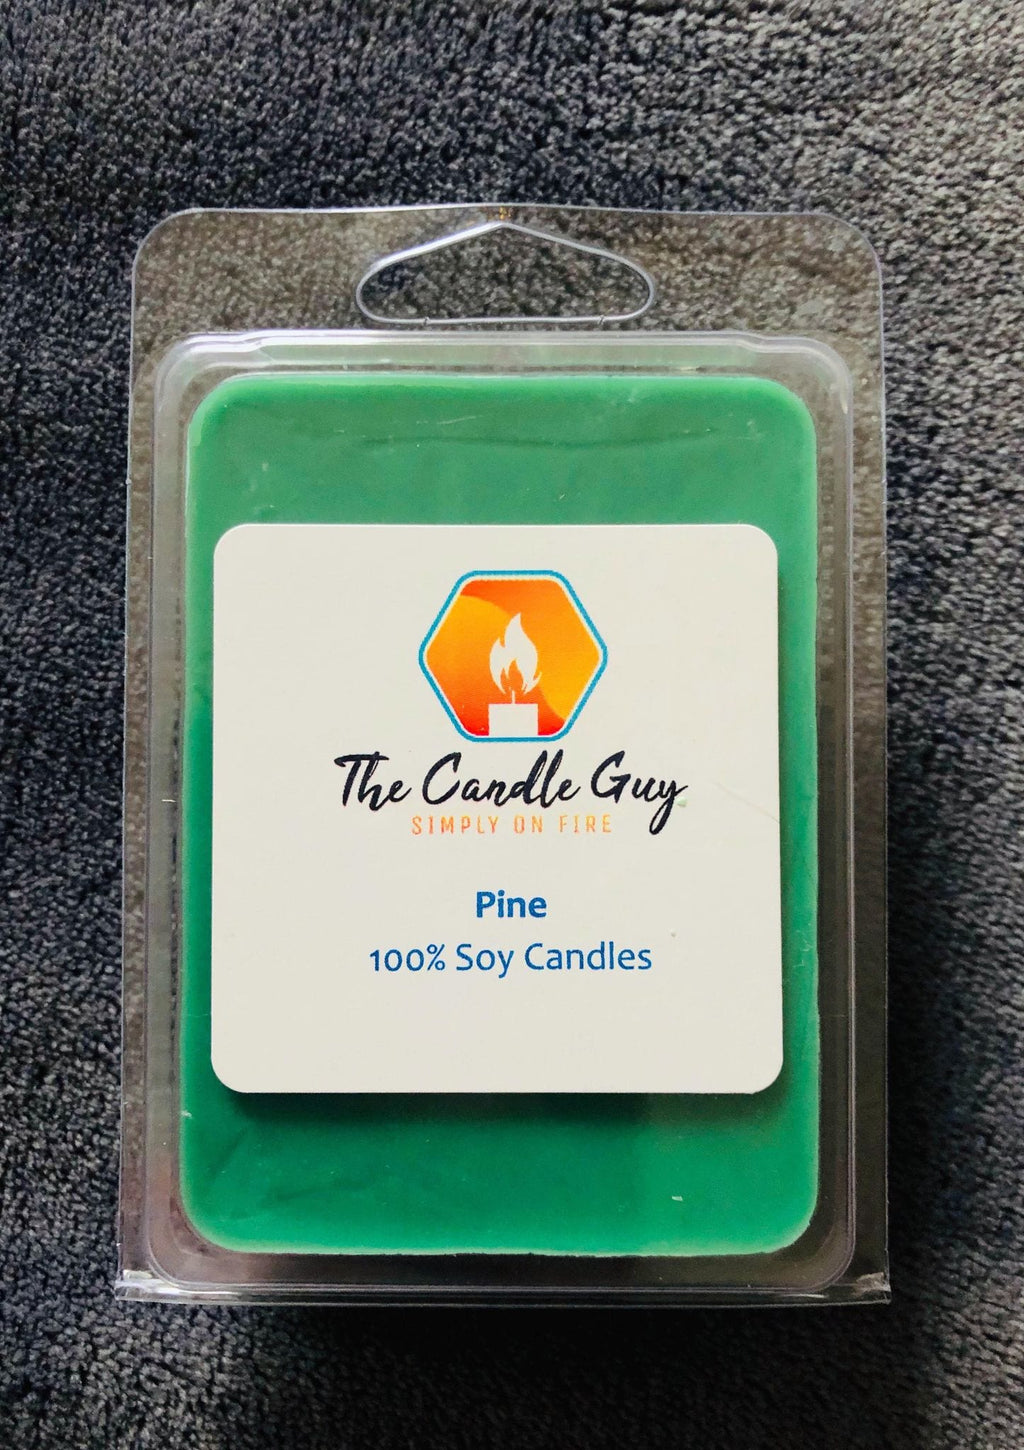 Pine Wax Melt - The Candle Guy LLC